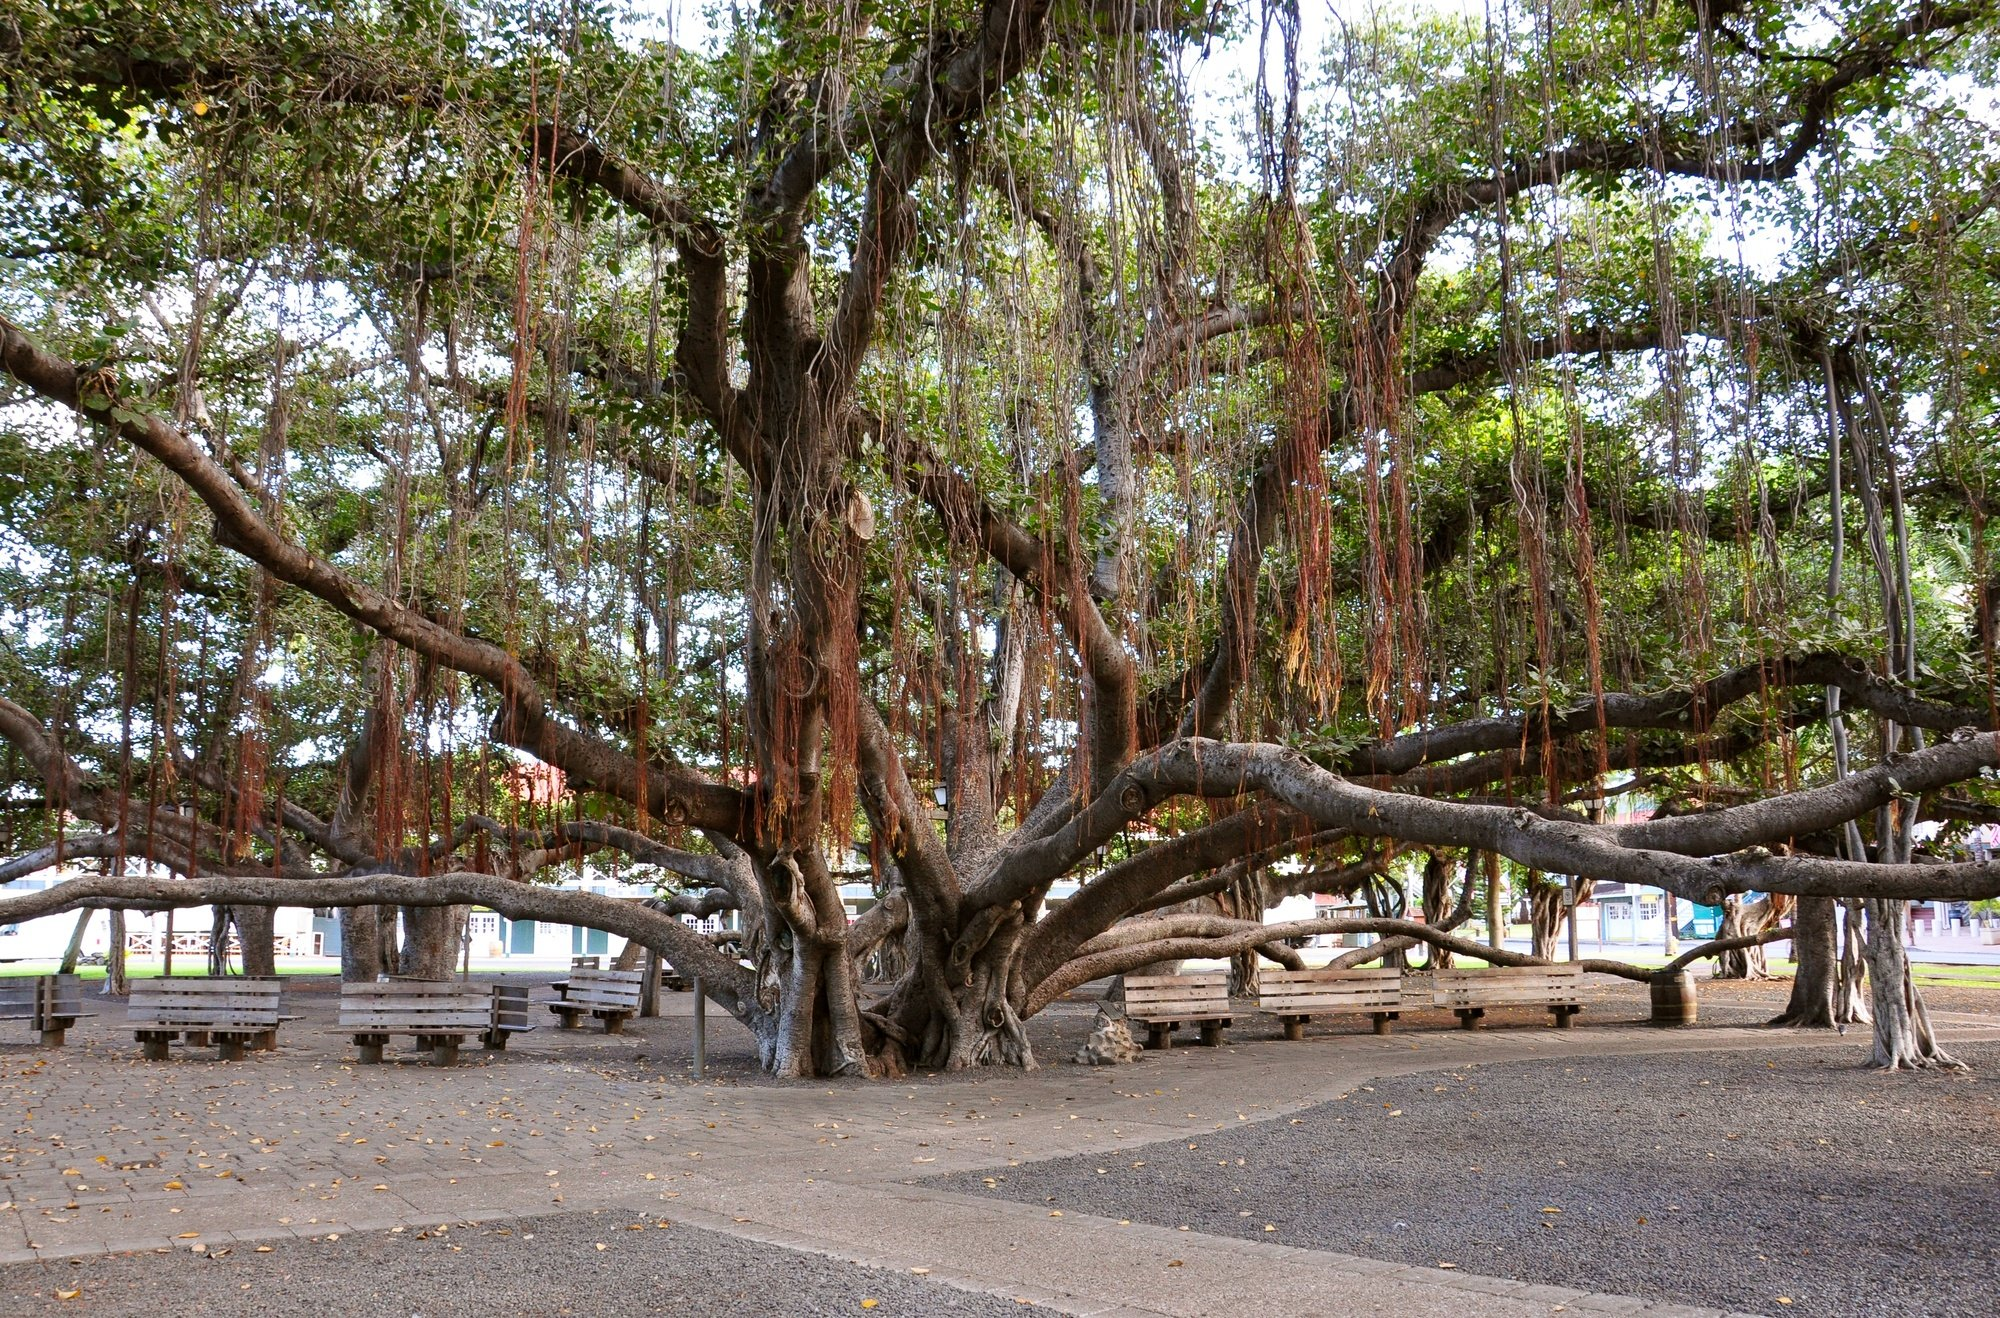 Lahaina Banyan Tree Park on Maui, Hawaii